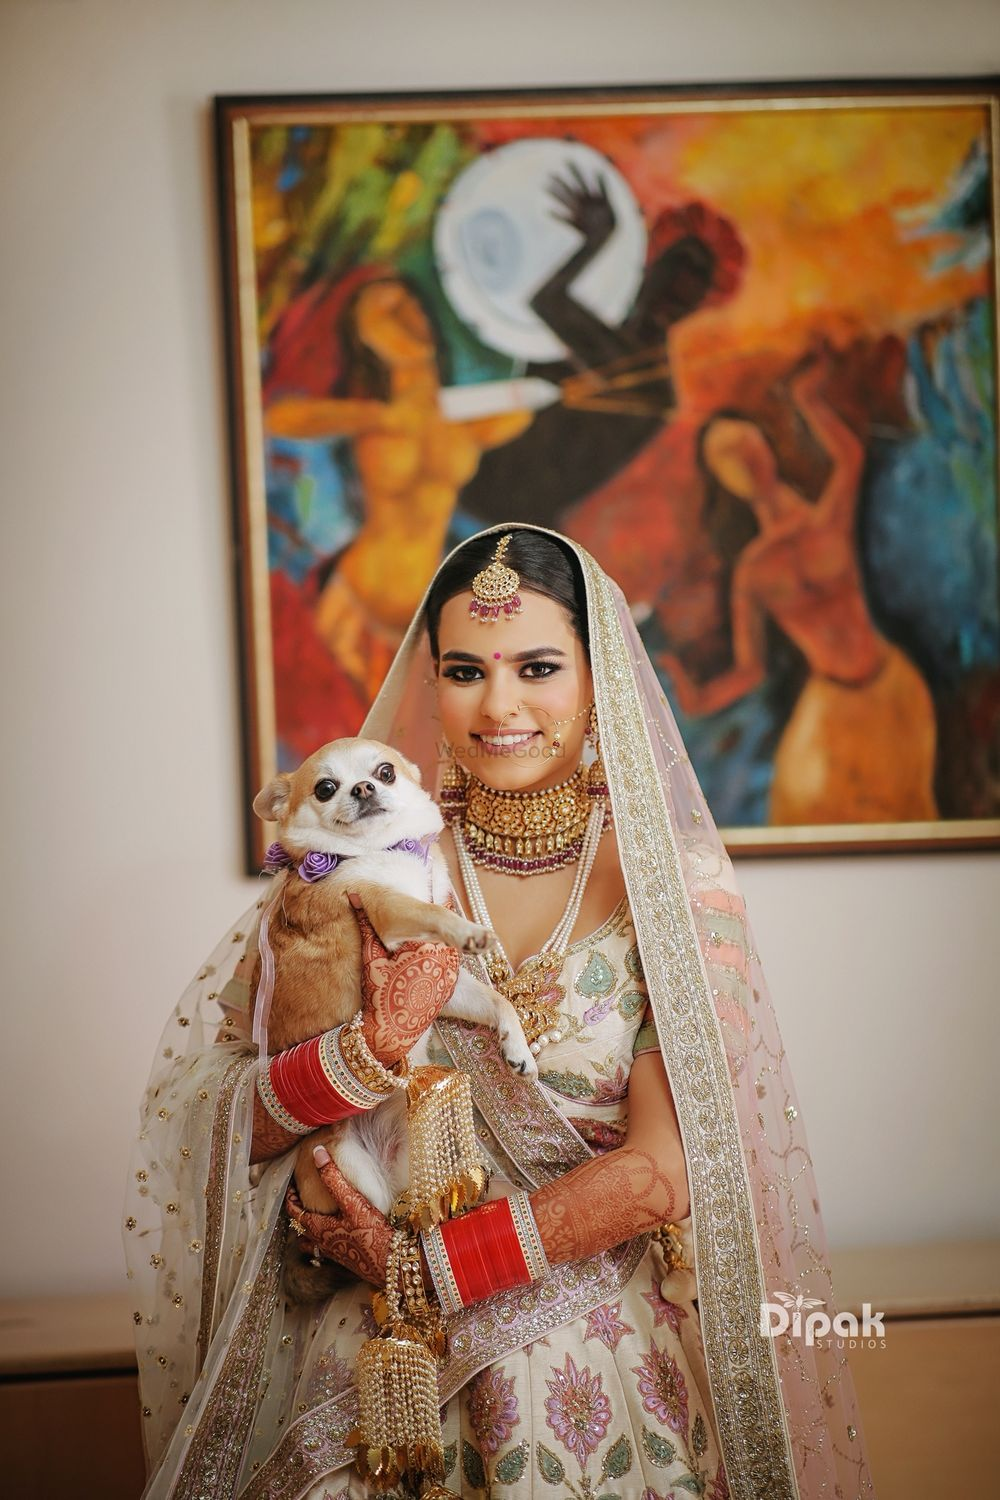 Photo of Bridal wedding day portrait idea with dog